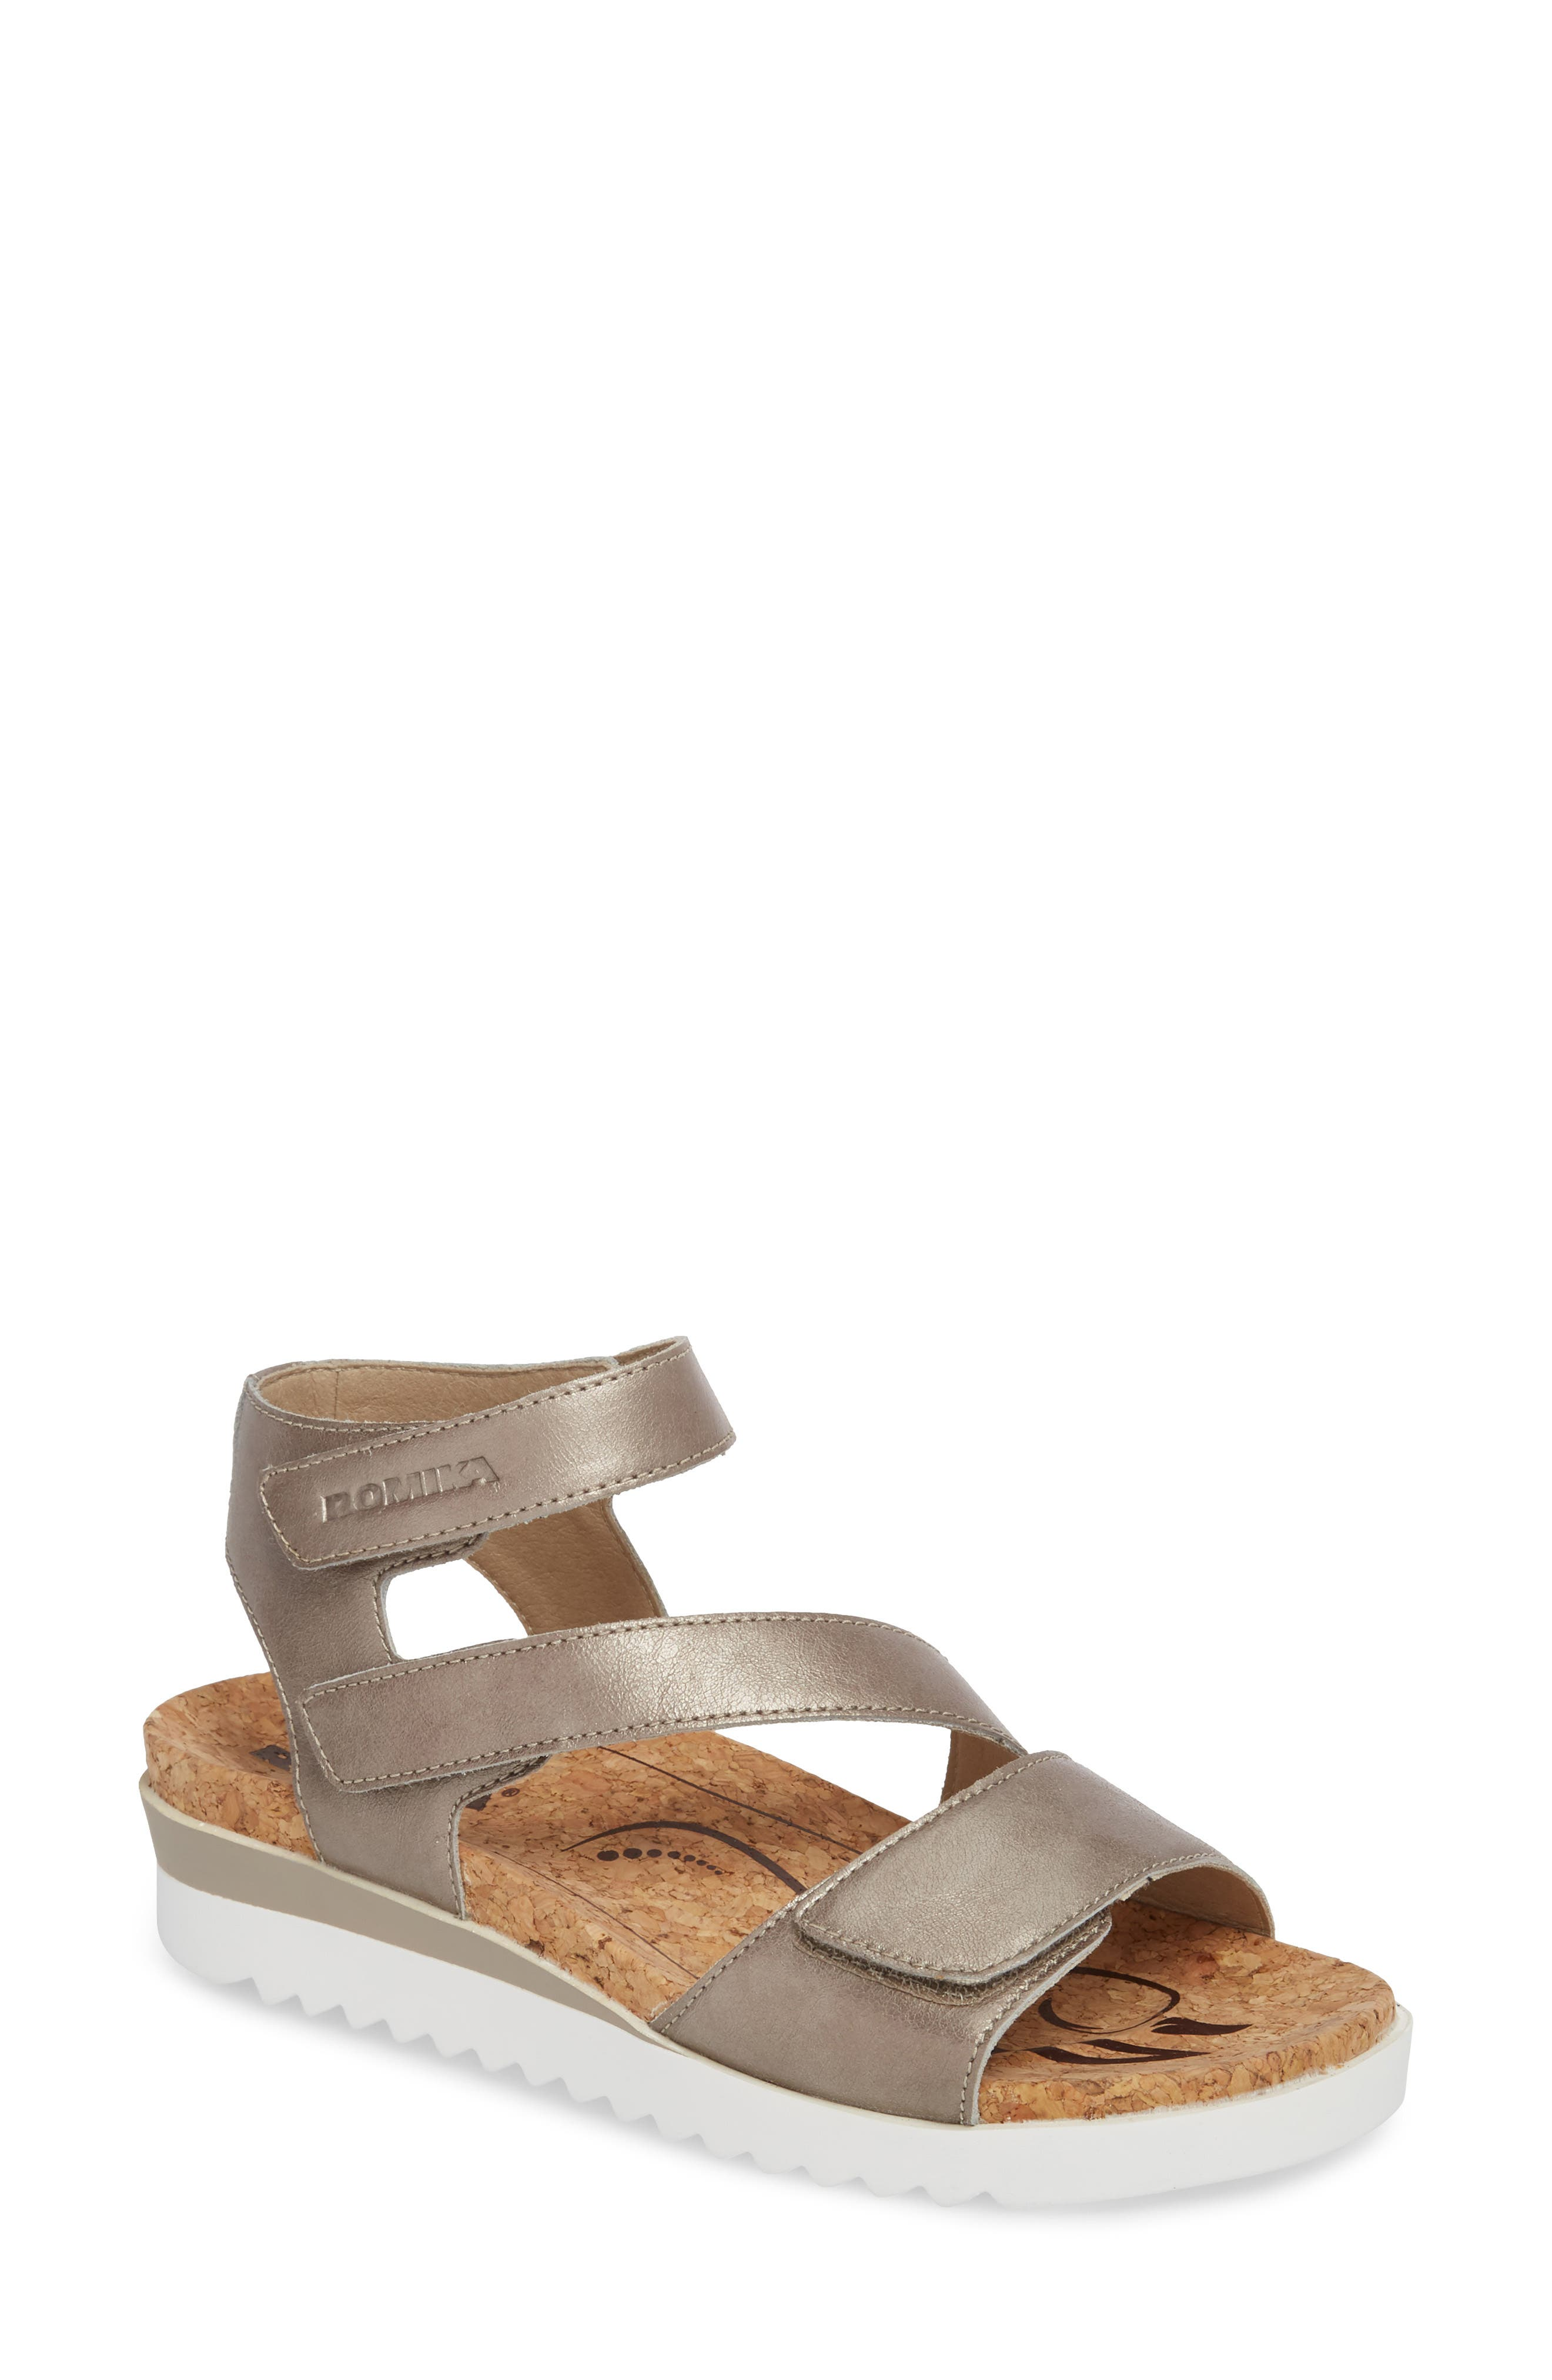 ROMIKA<SUP>®</SUP>, Hollywood 04 Sandal, Main thumbnail 1, color, PLATINUM LEATHER